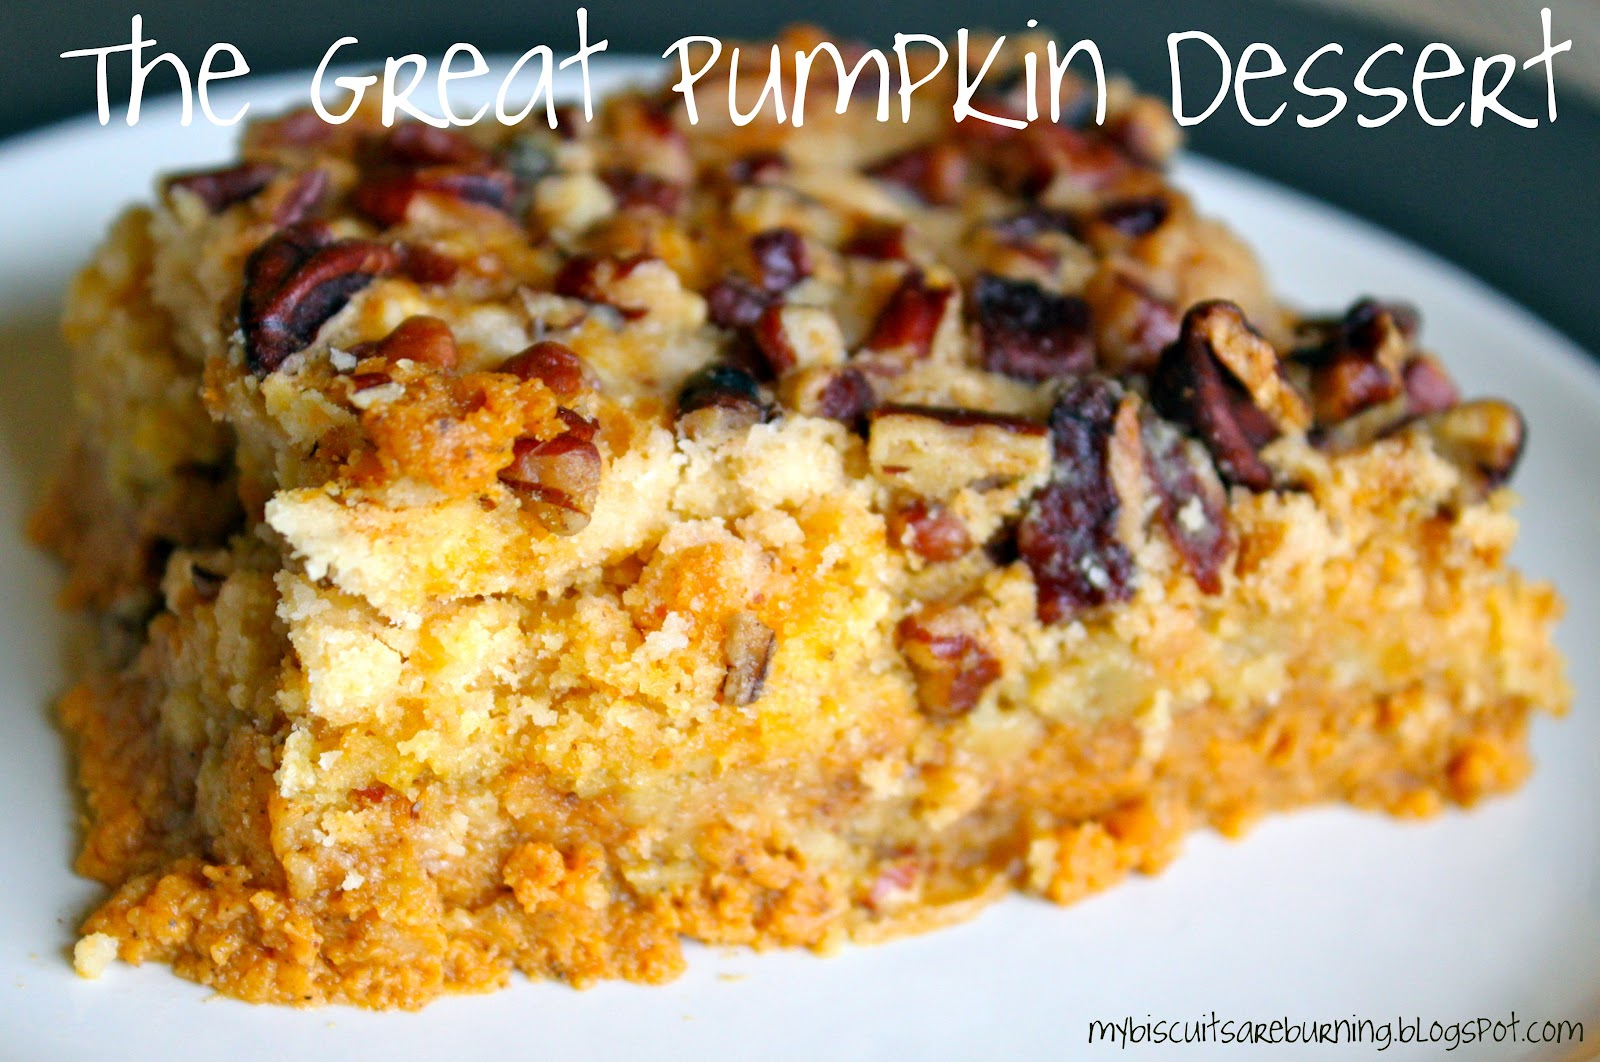 My Biscuits are Burning: It's The Great Pumpkin Dessert!